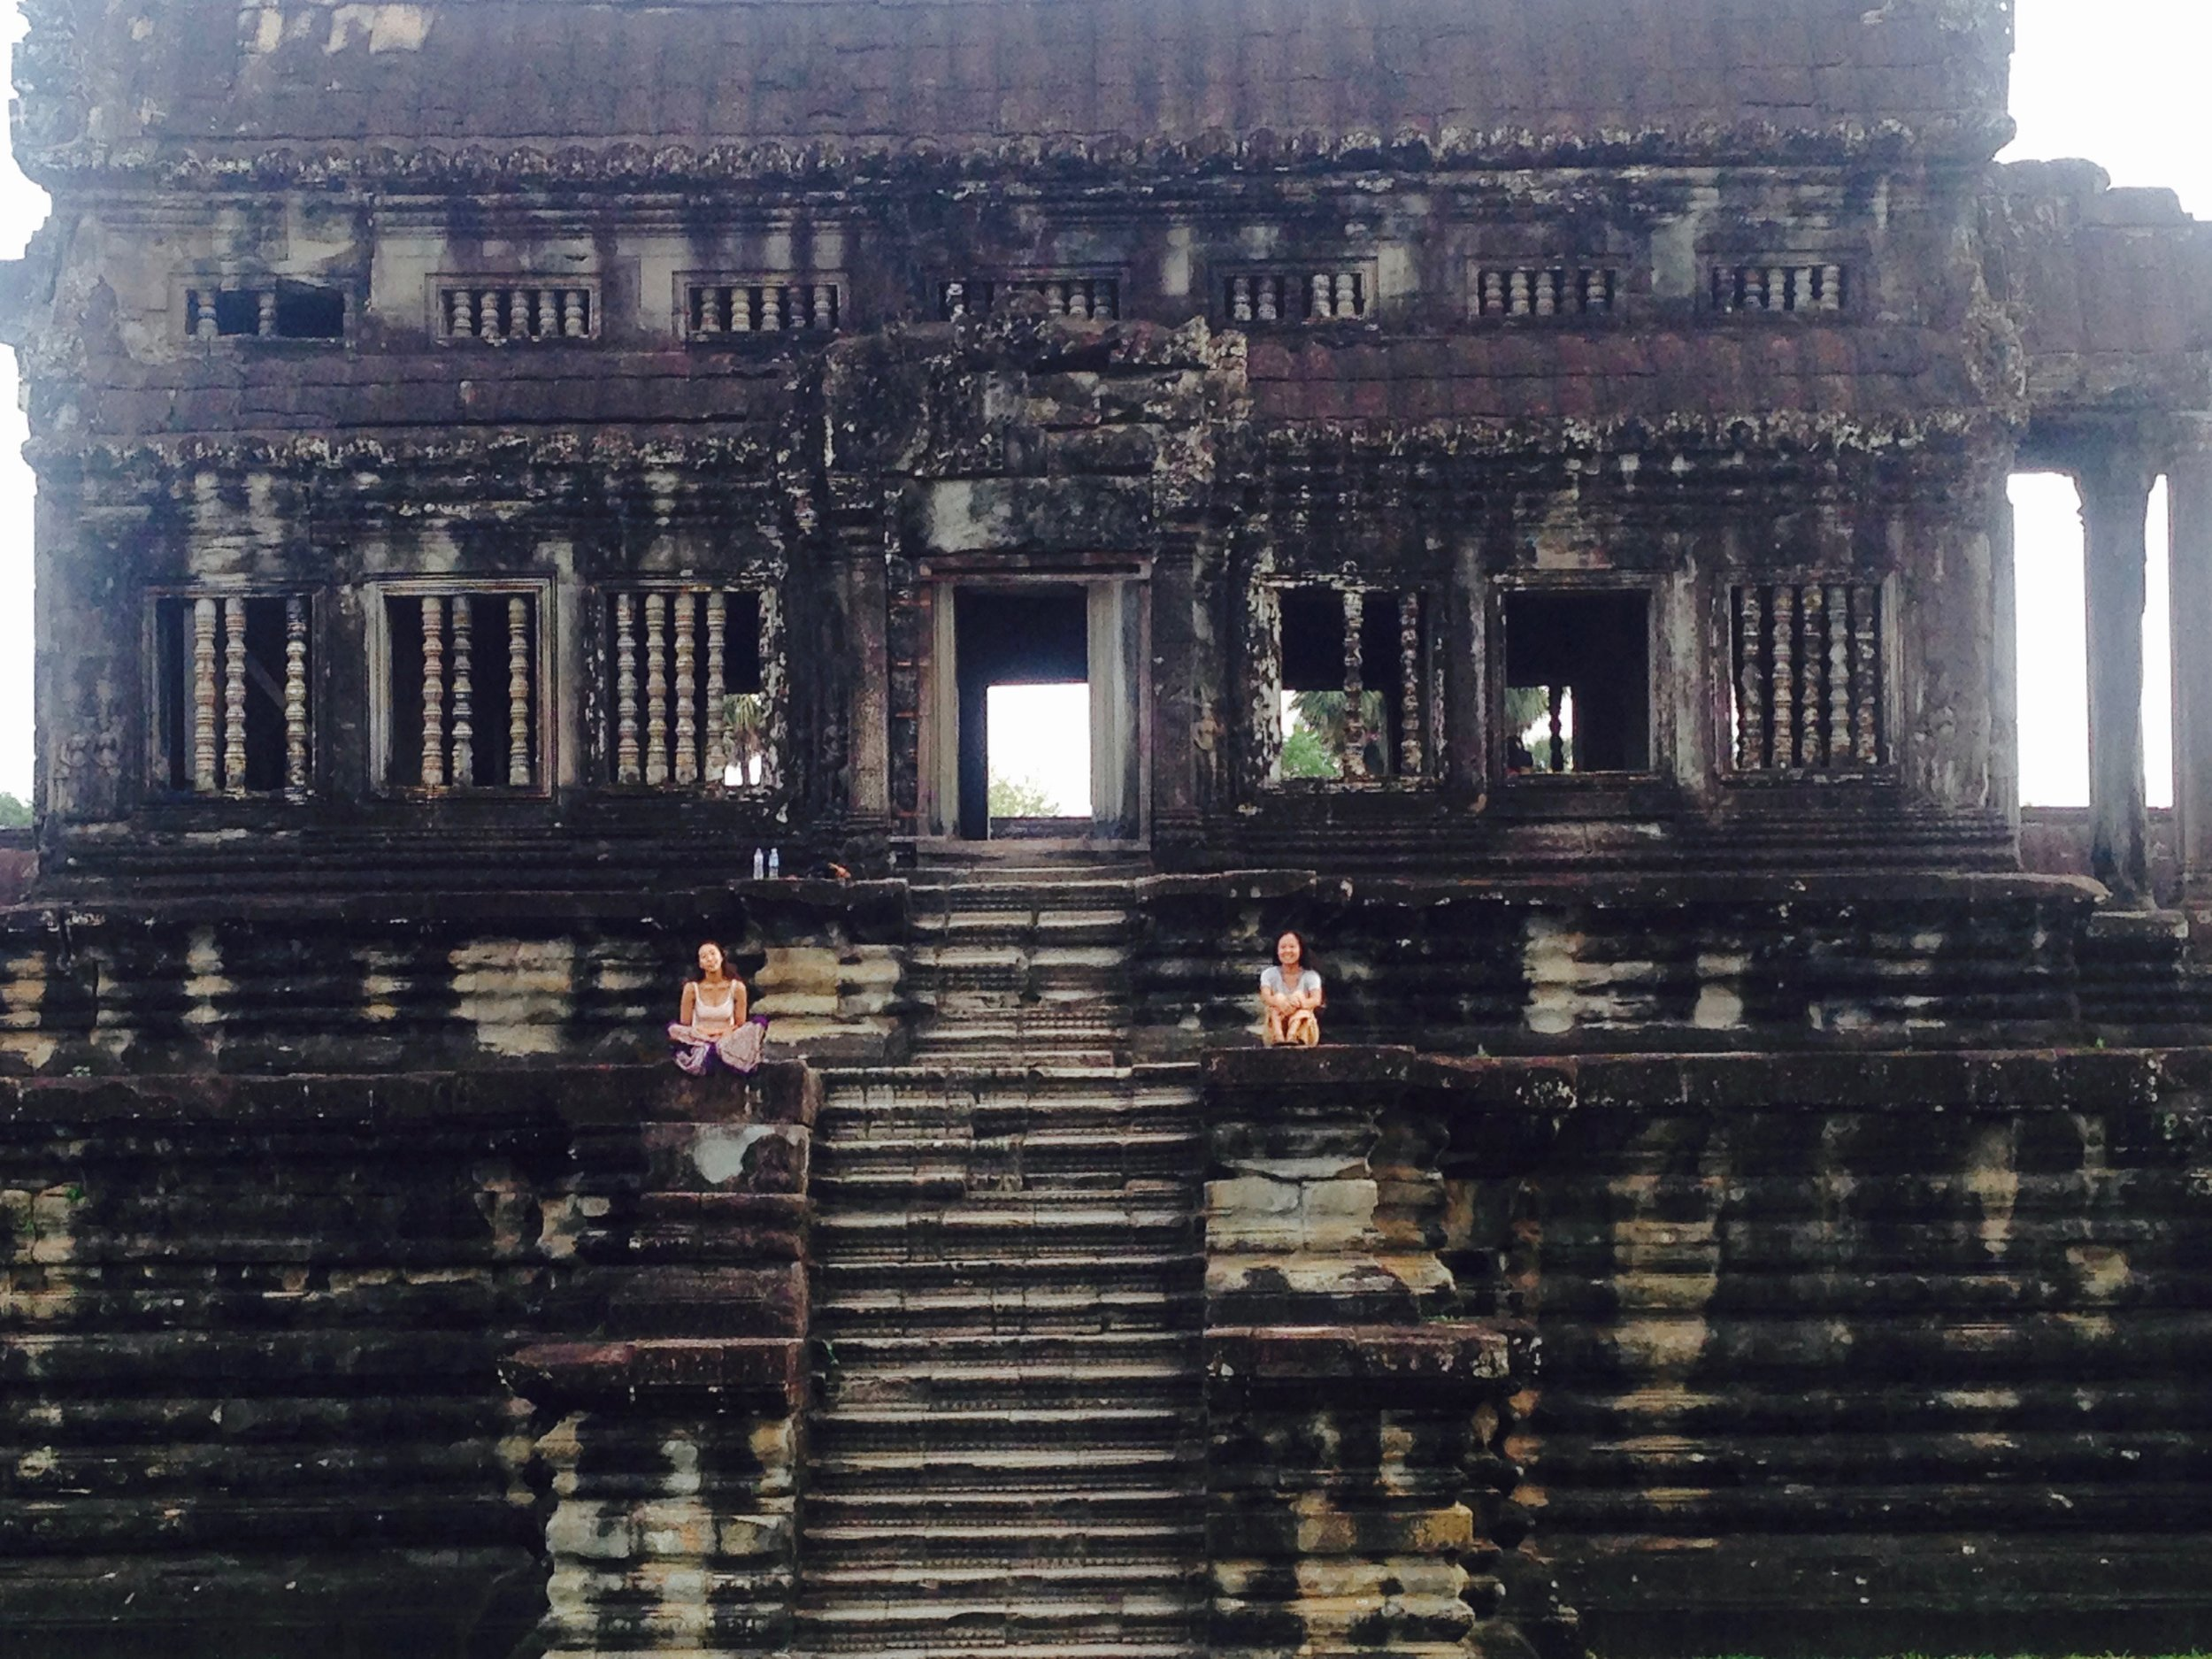 Symmetry is everything at Angkor Wat